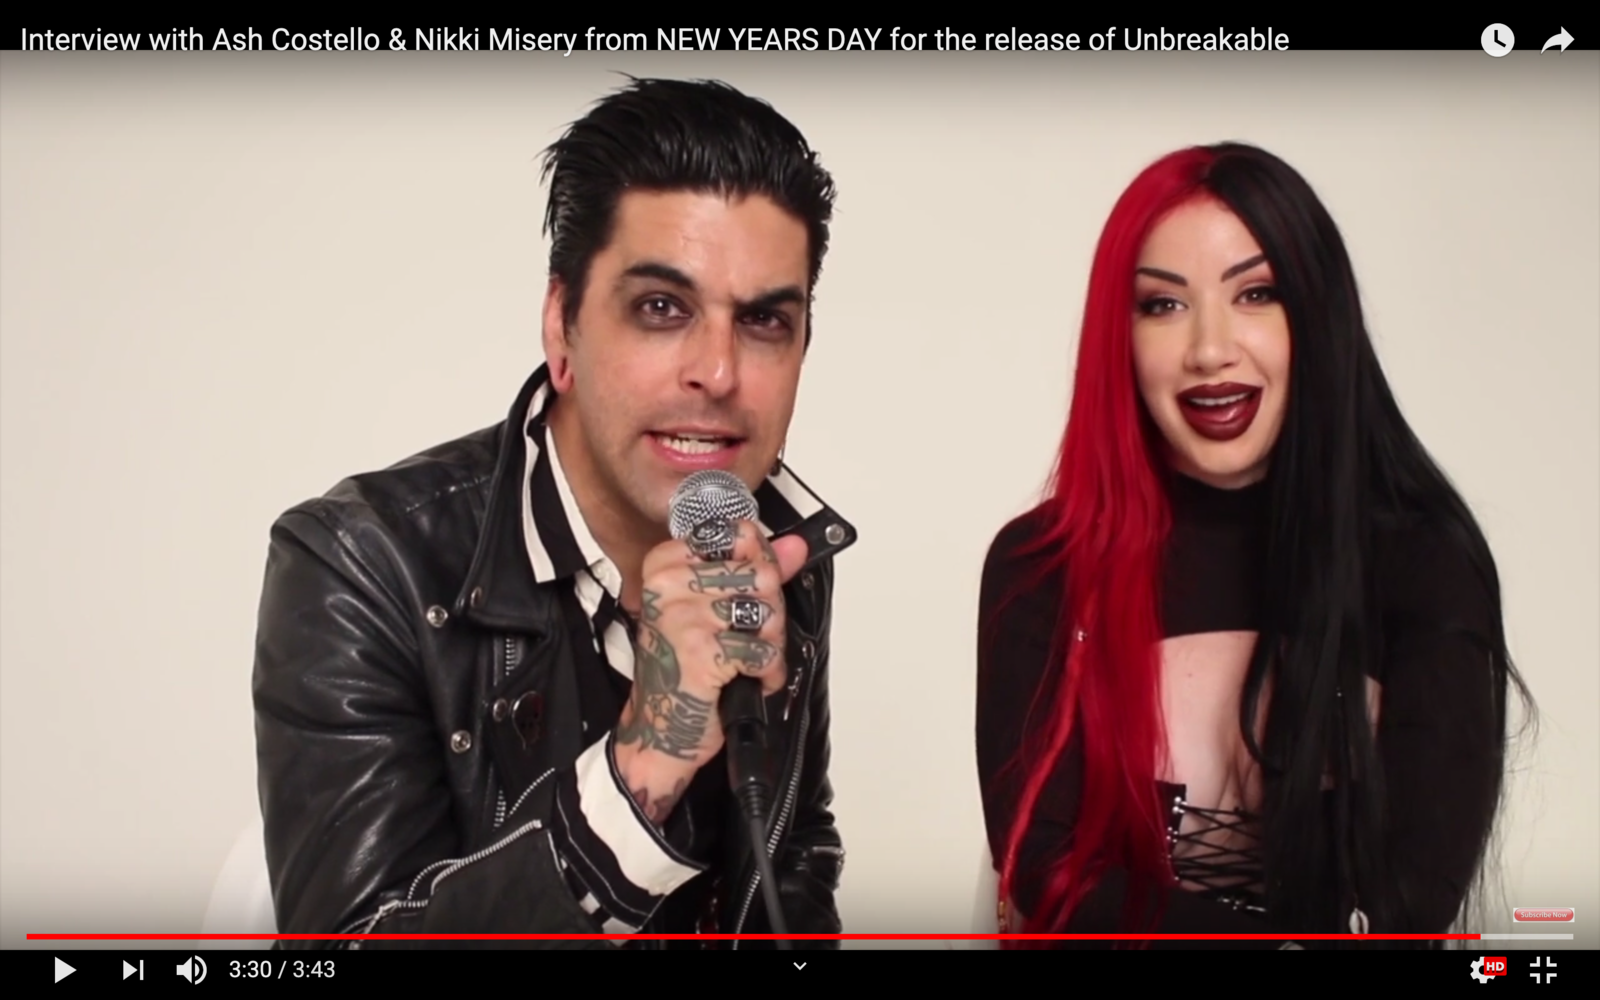 Nouvelle interview avec NEW YEARS DAY pour Unbreakable